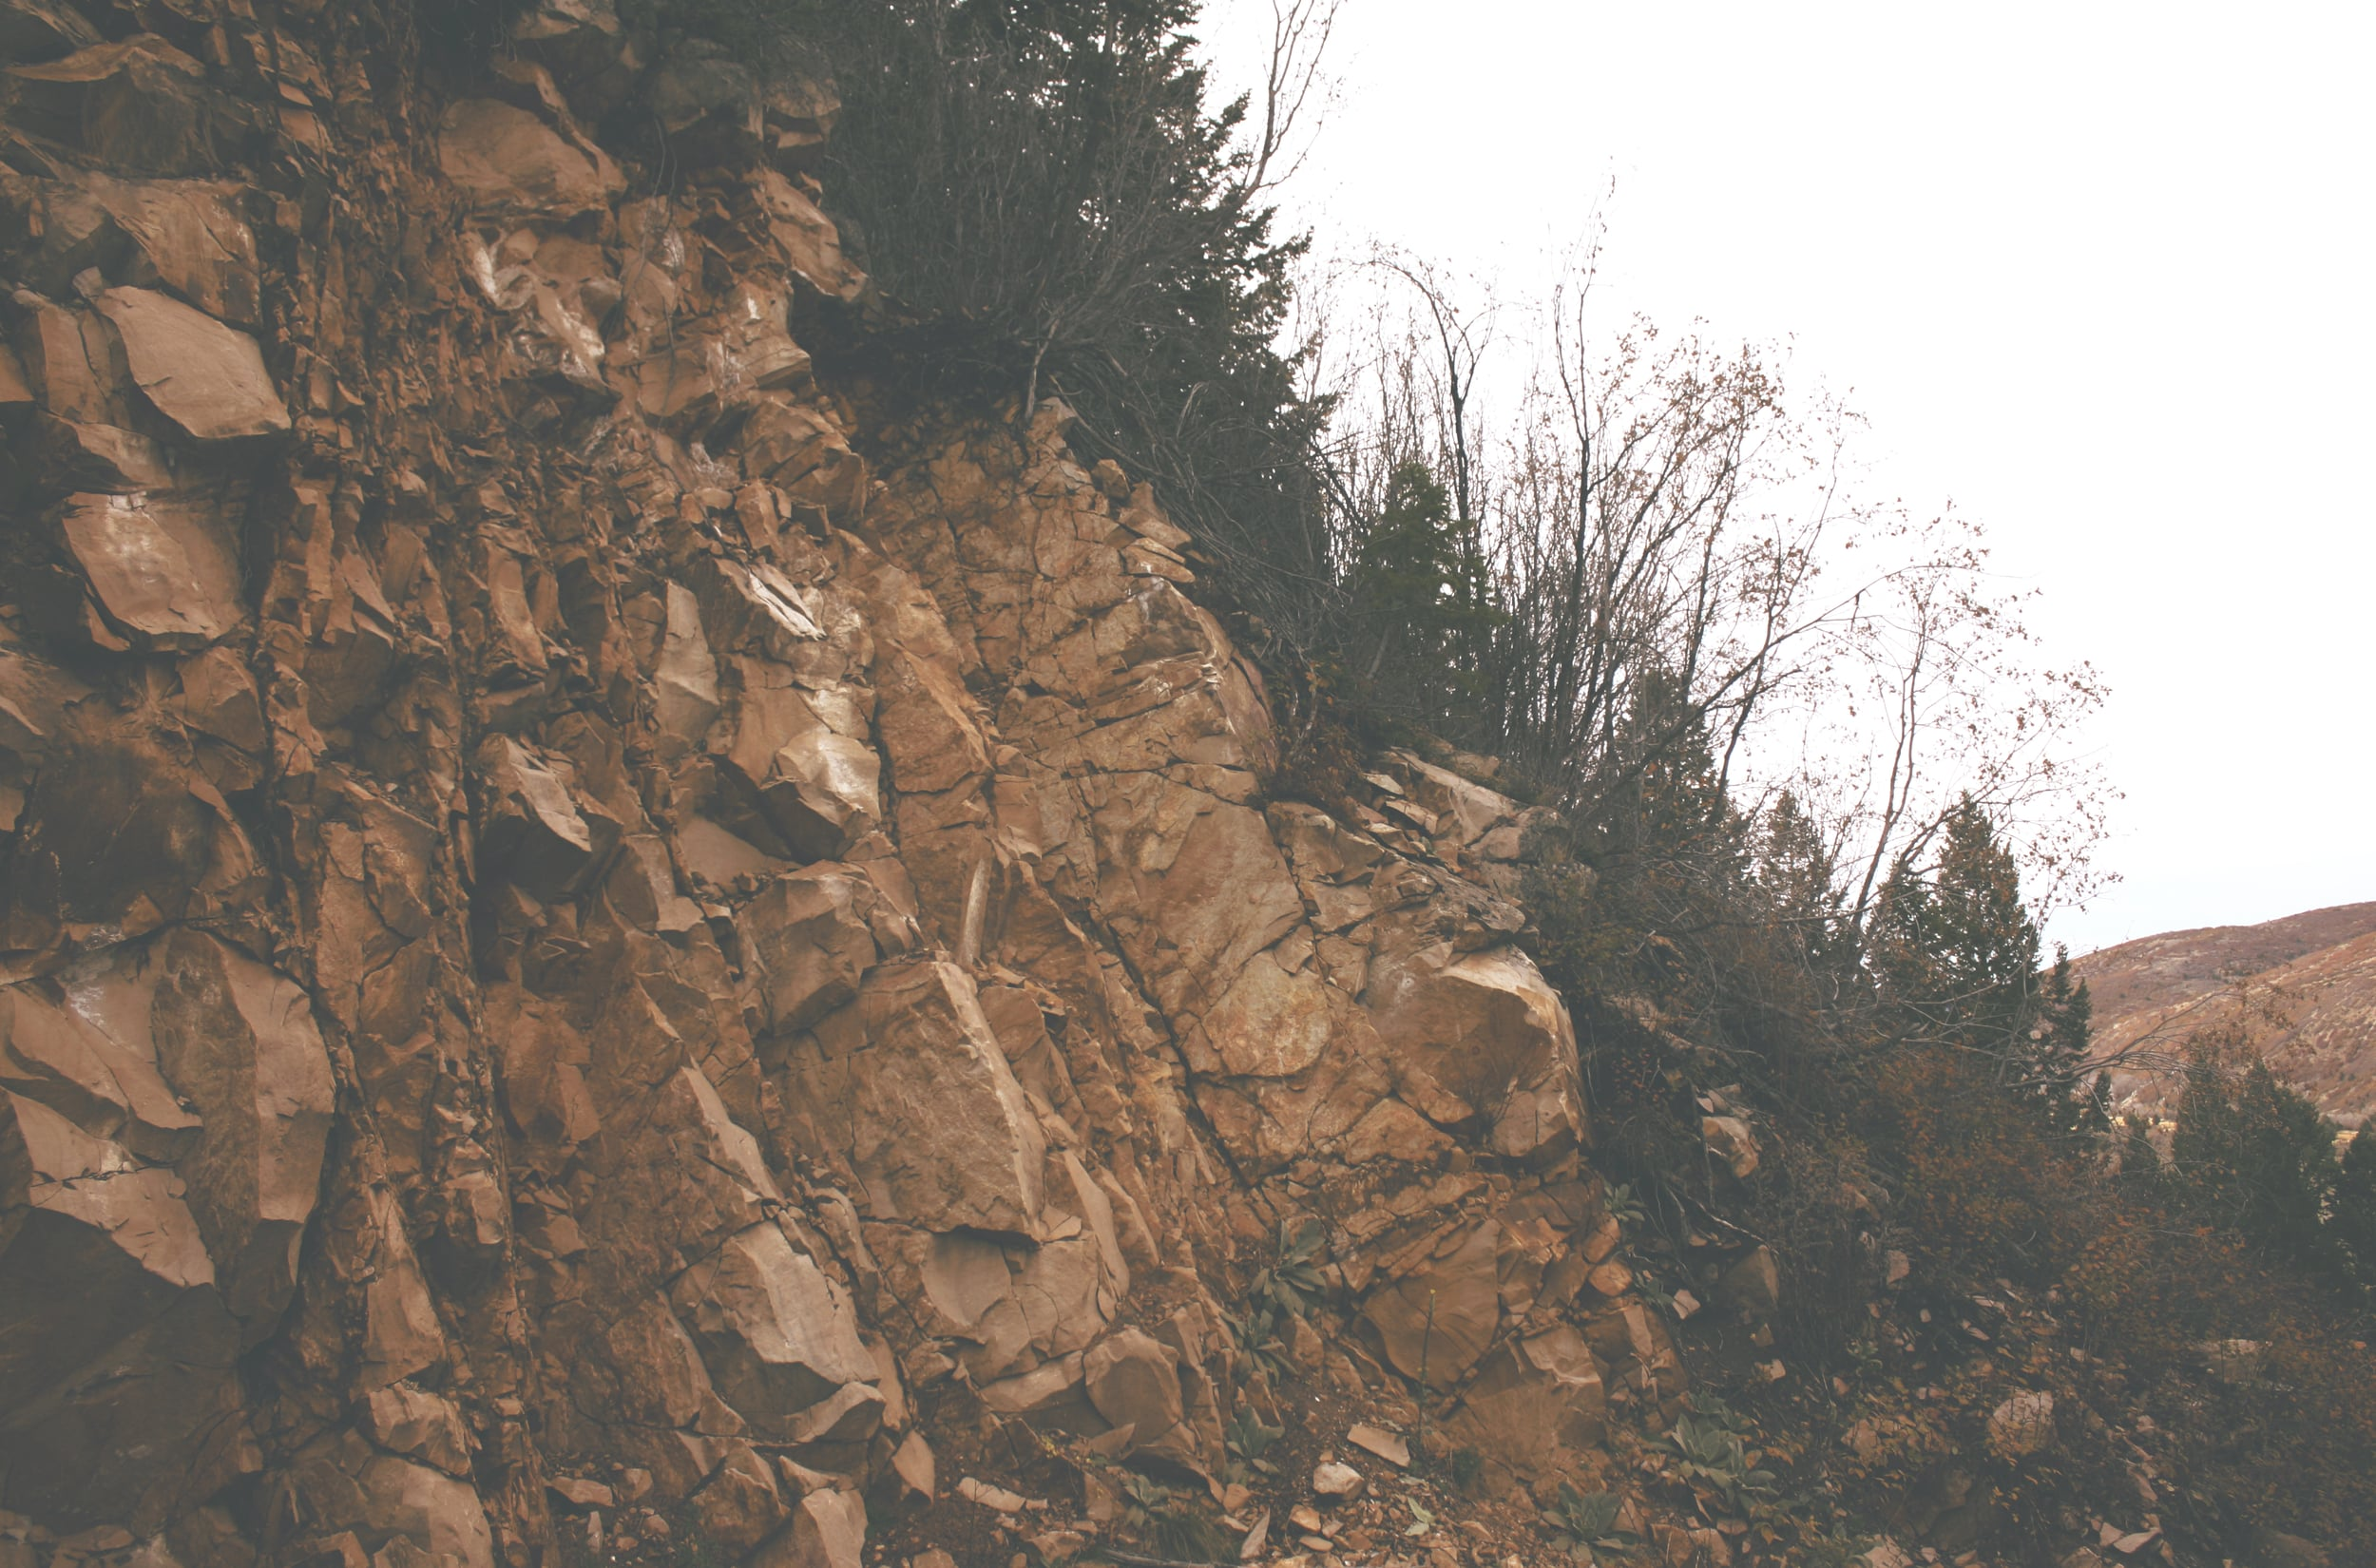 The Rock Wall